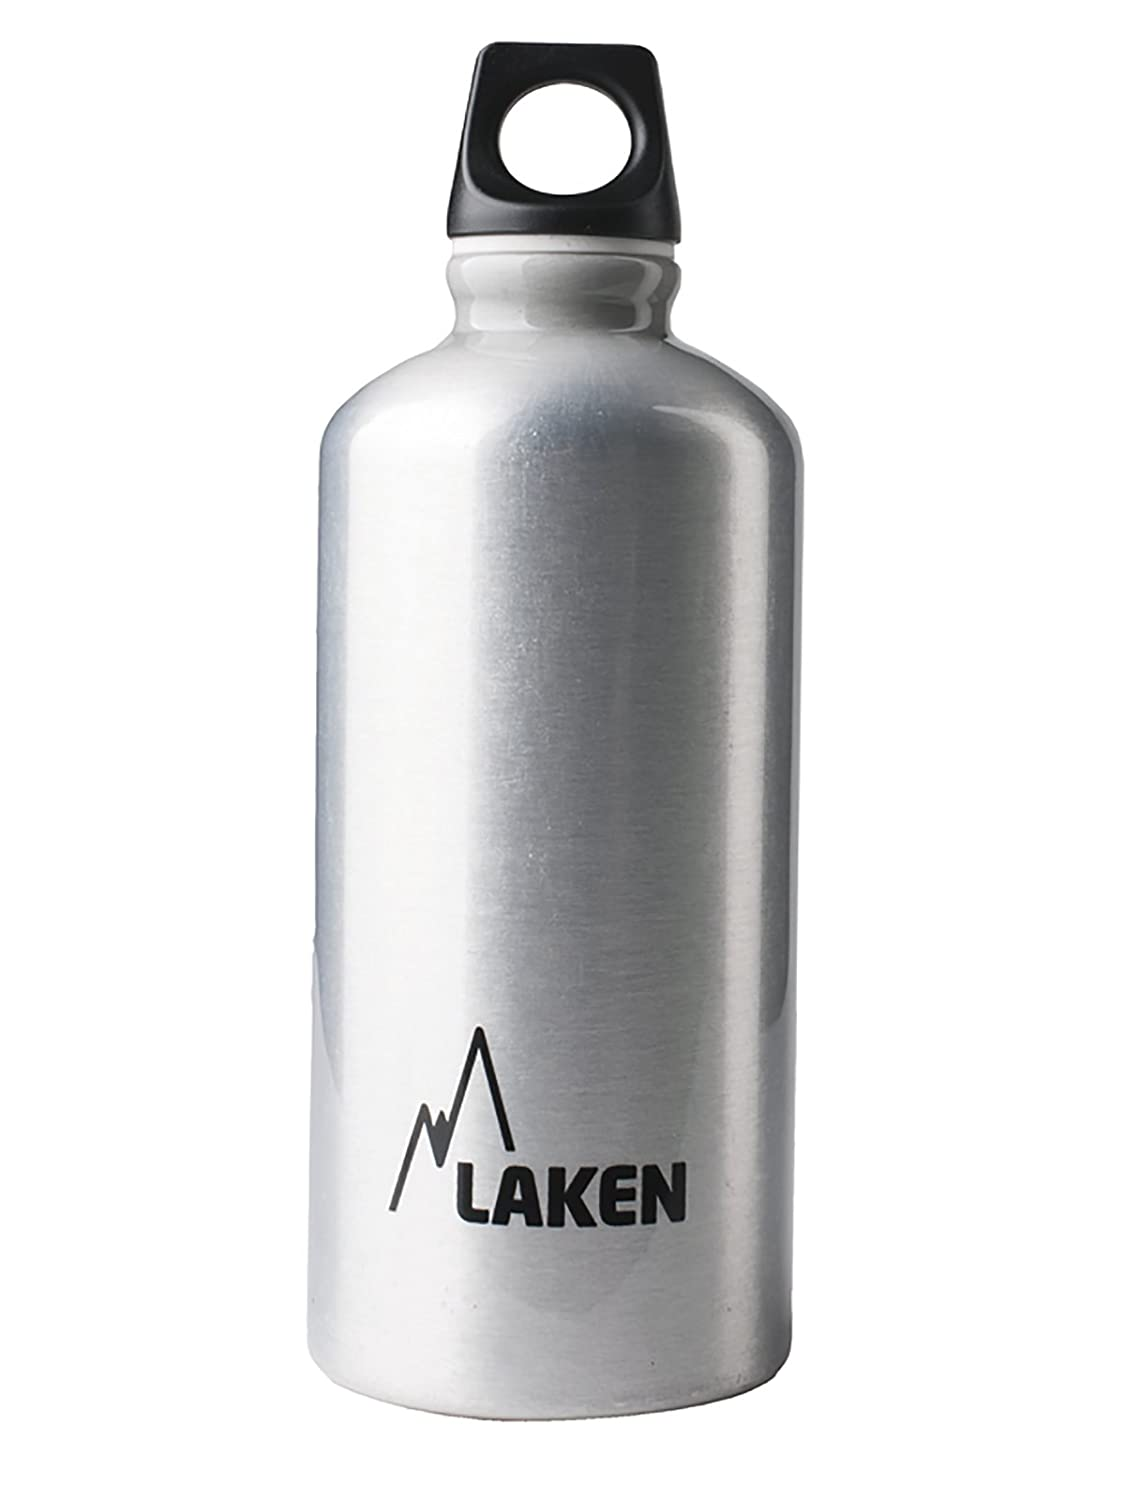 Laken Futura Aluminum Water Bottle Narrow Mouth Screw Cap with Loop 20-50 Ounces